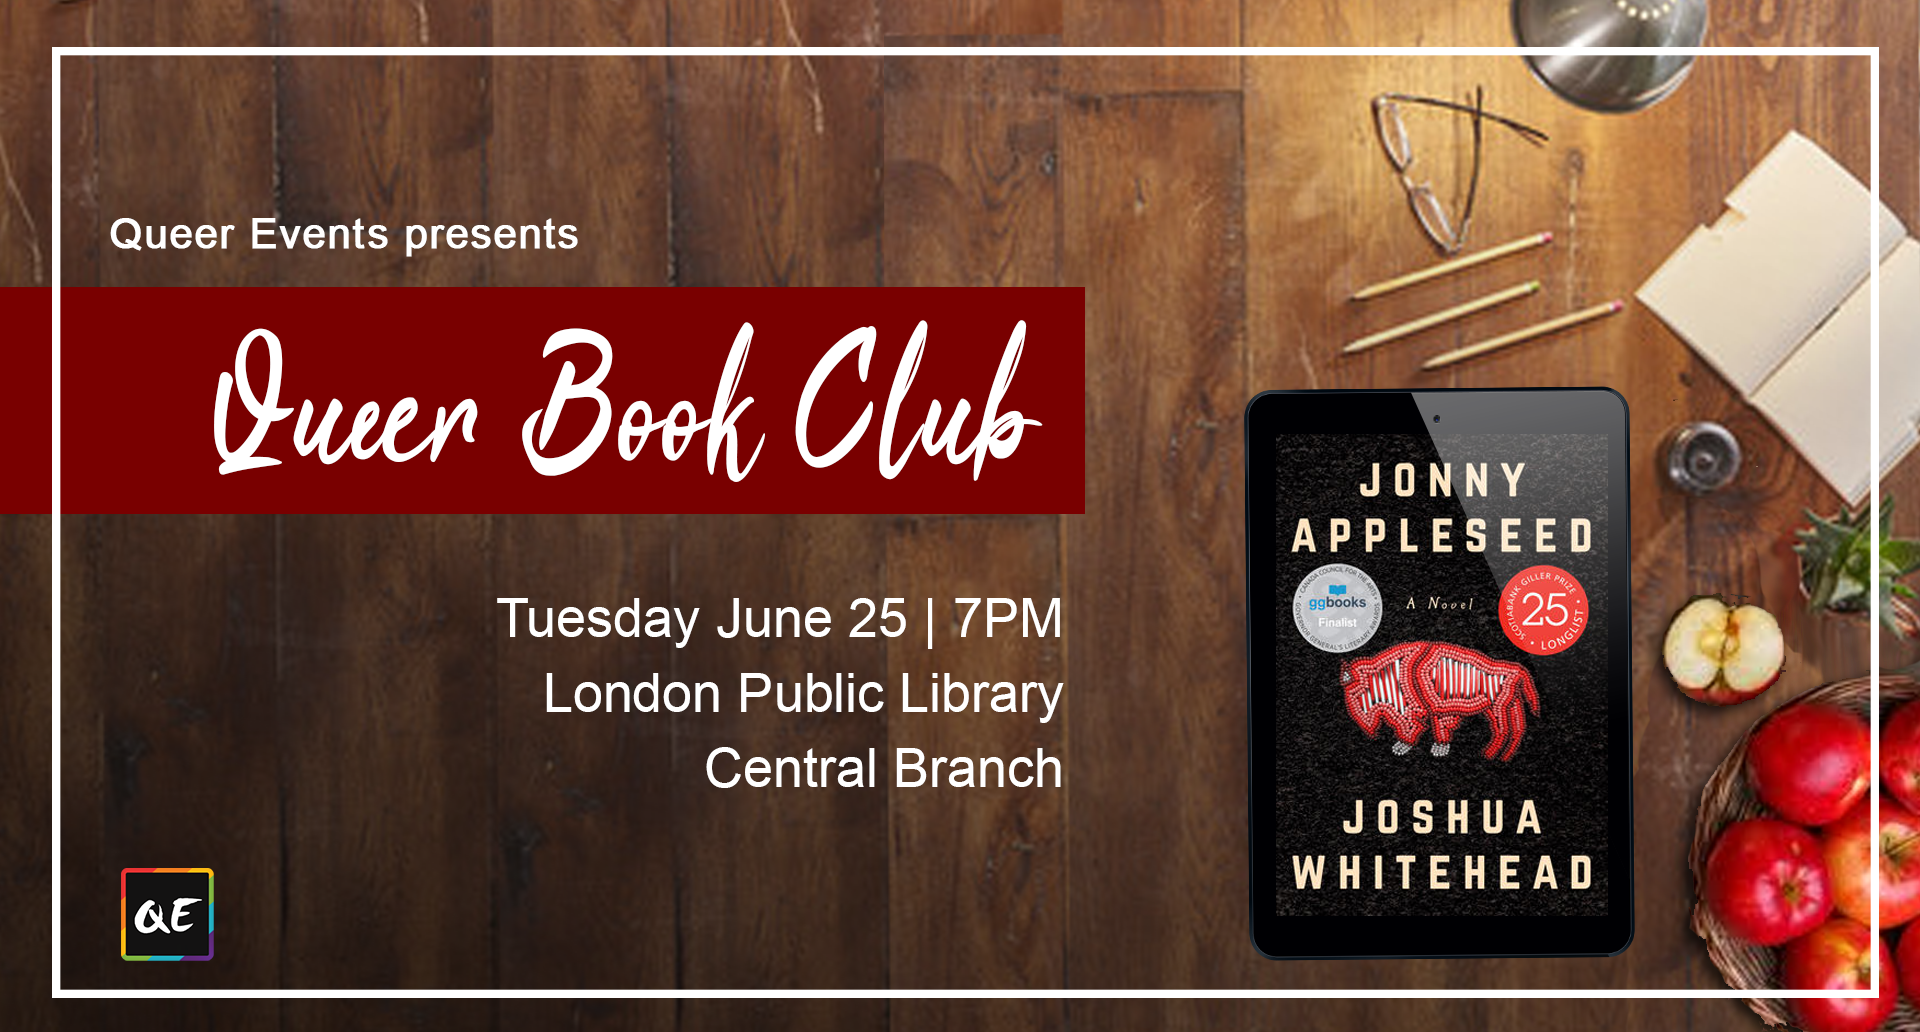 QueerEvents.ca- London Event Listing - June's Queer Book Club